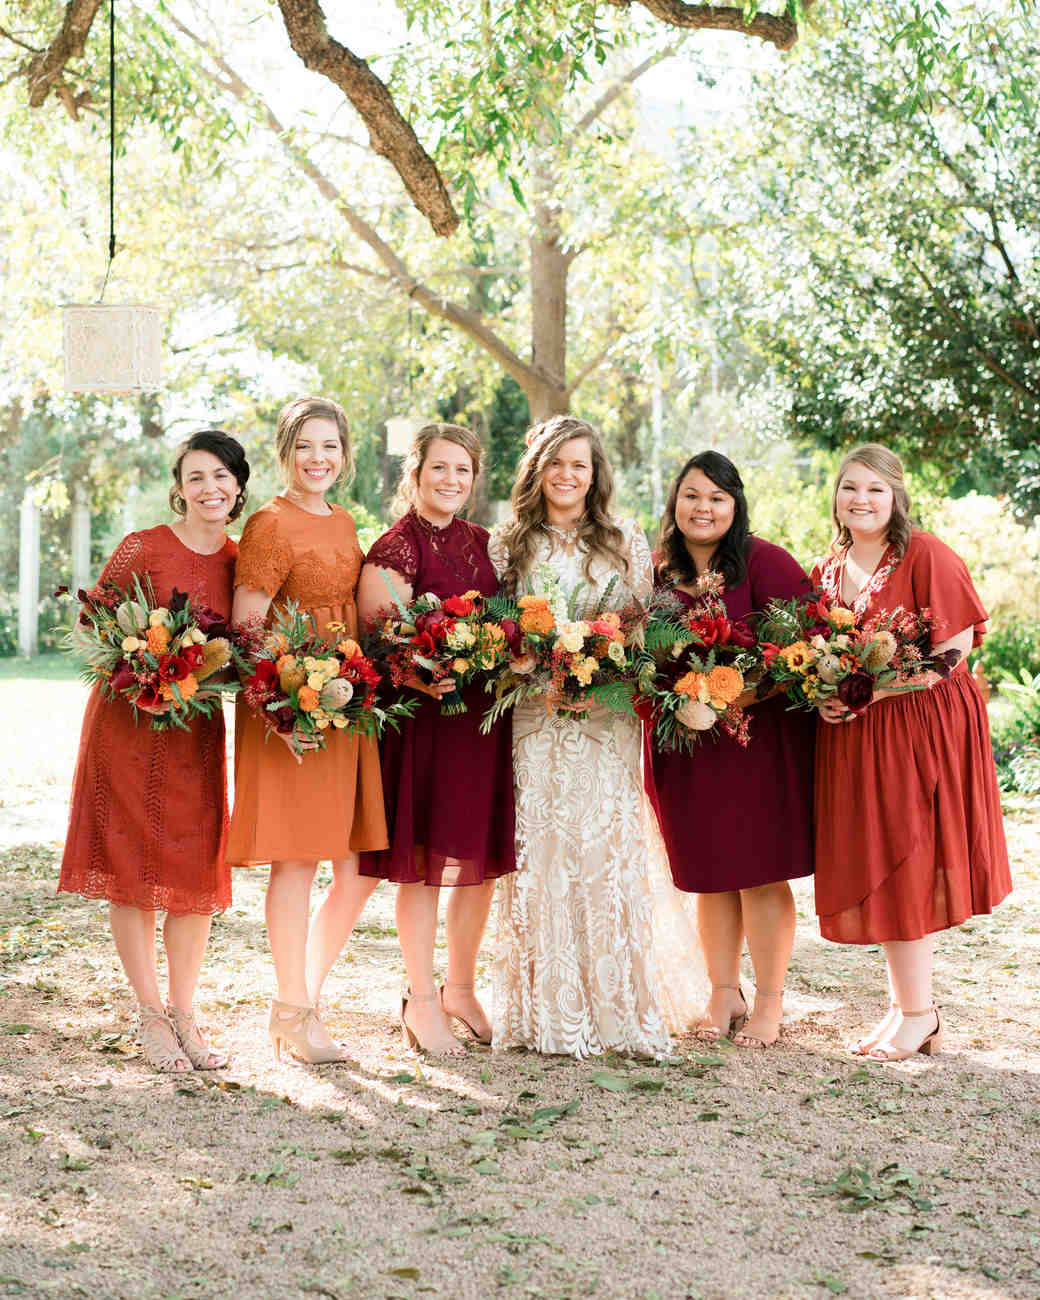 hayleigh corey wedding bridesmaids and bride